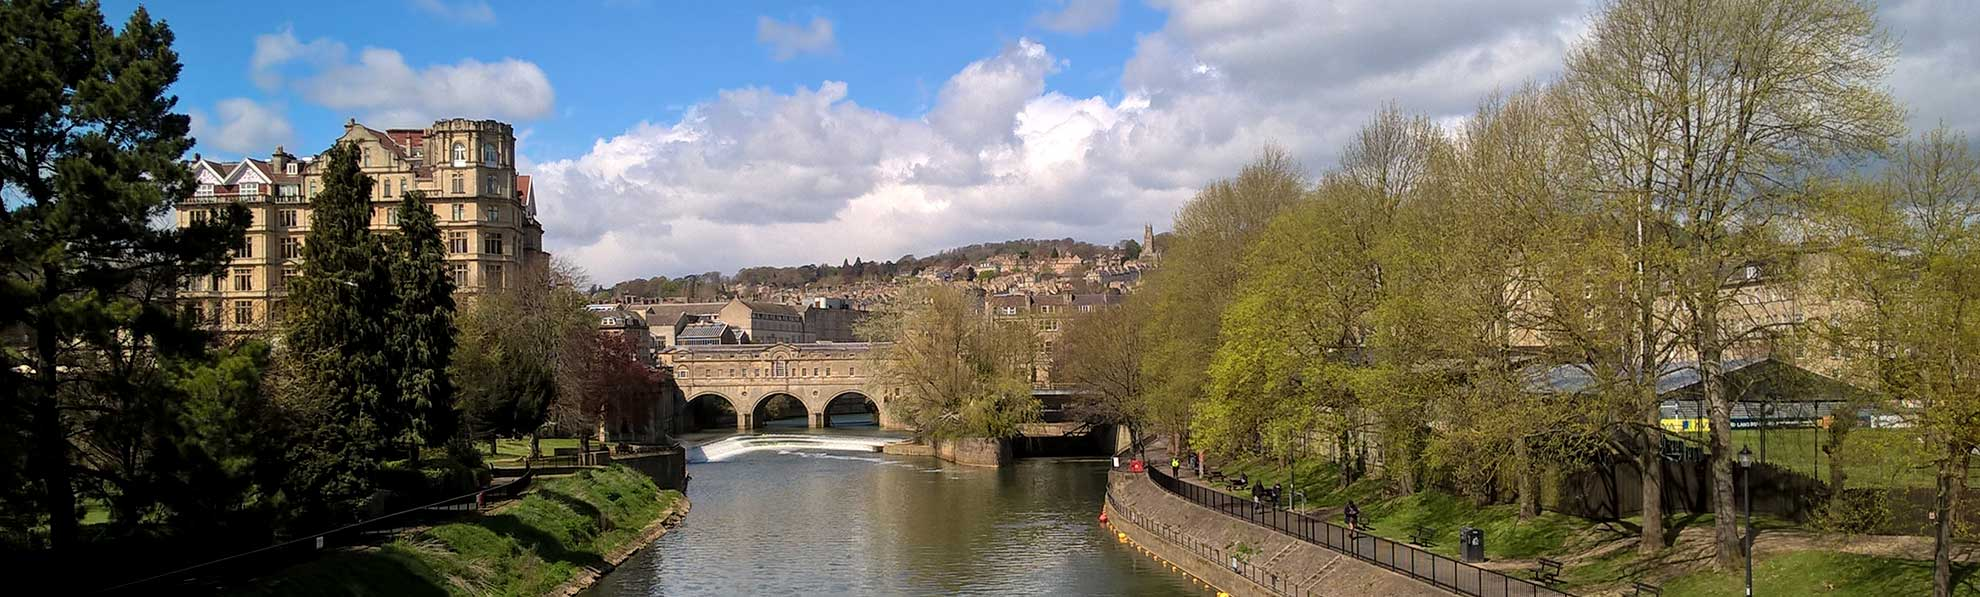 Bath city, location of Mantra Restaurant Bath